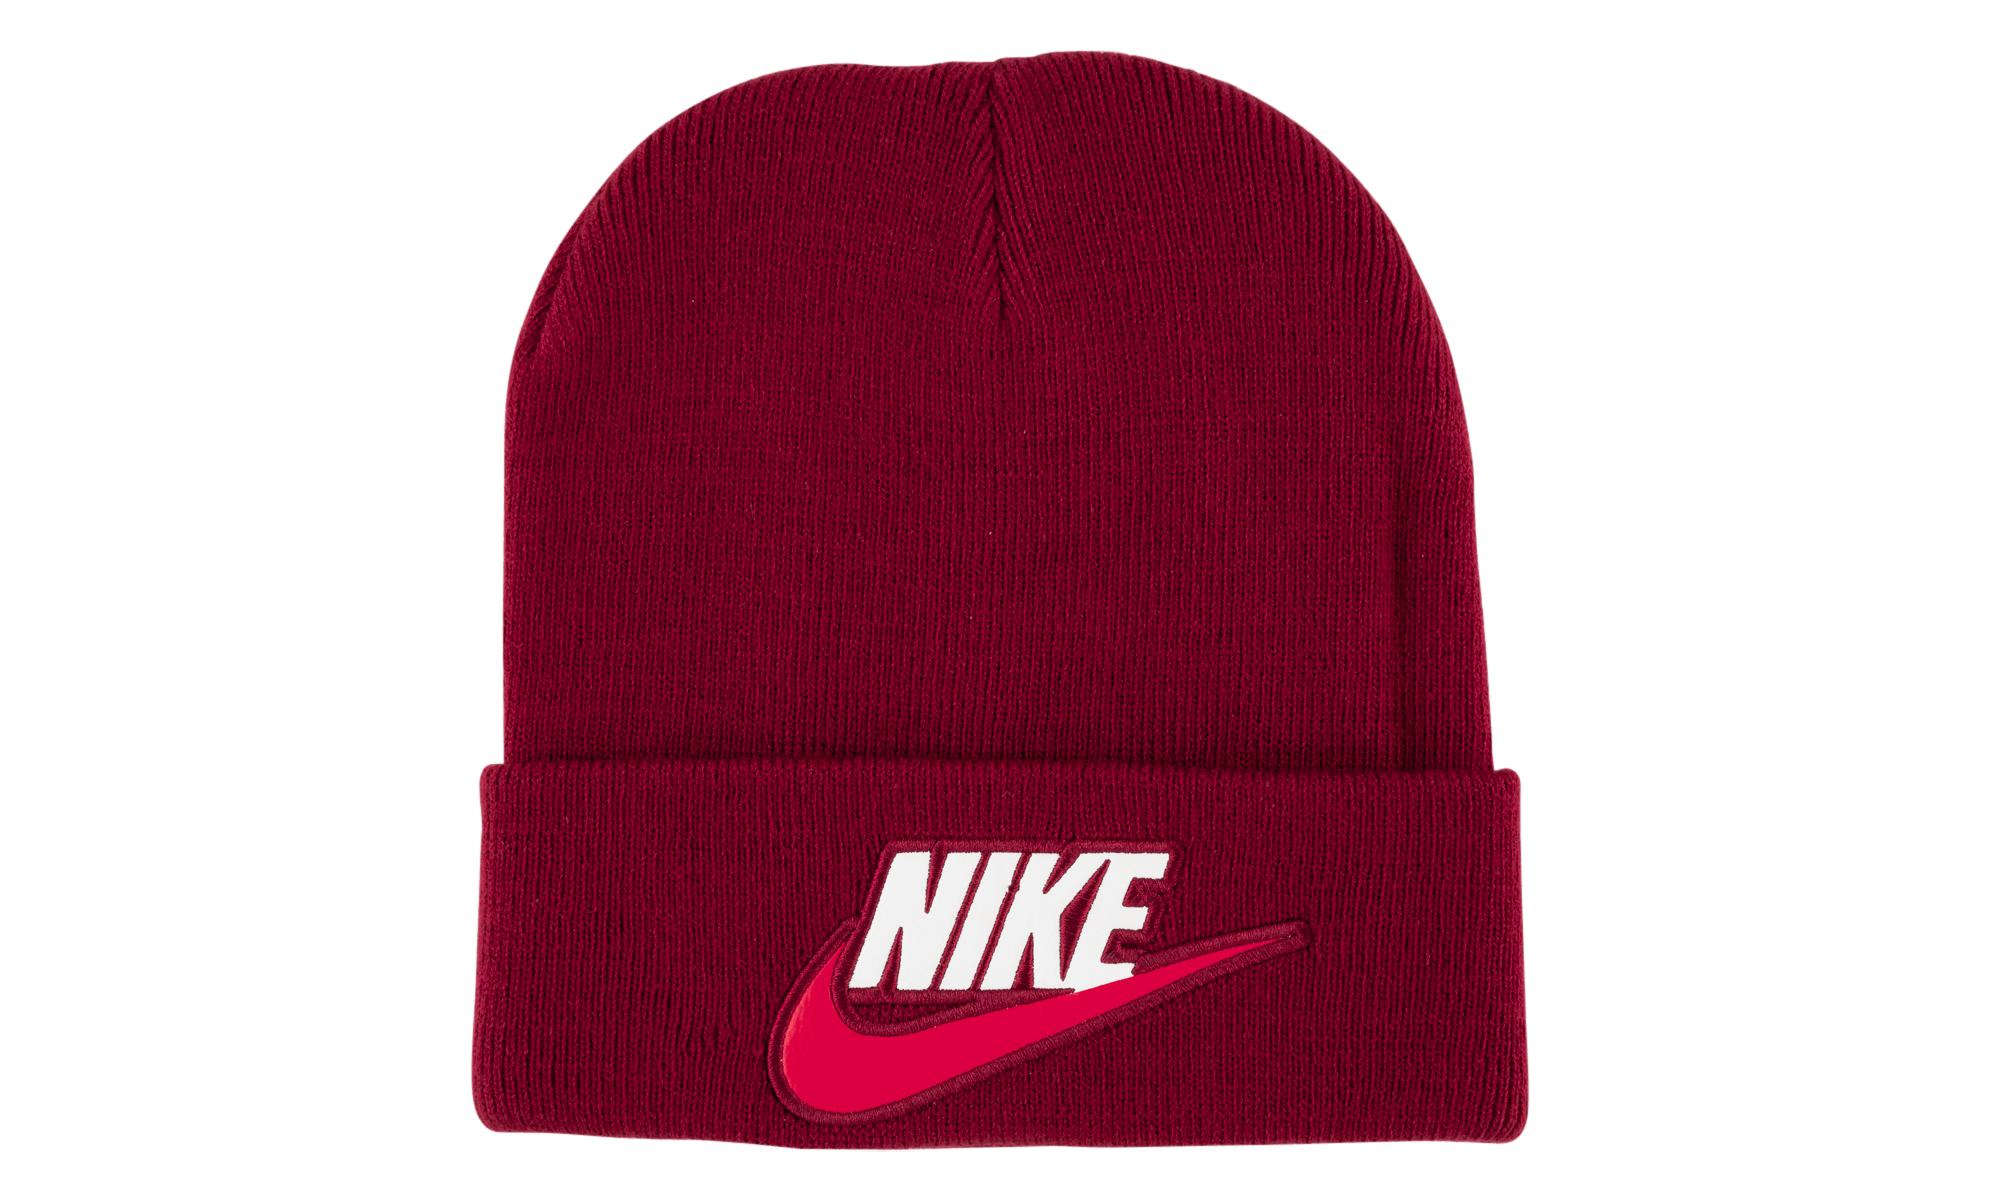 70d2a2c2 Lyst - Supreme Nike Beanie in Red for Men